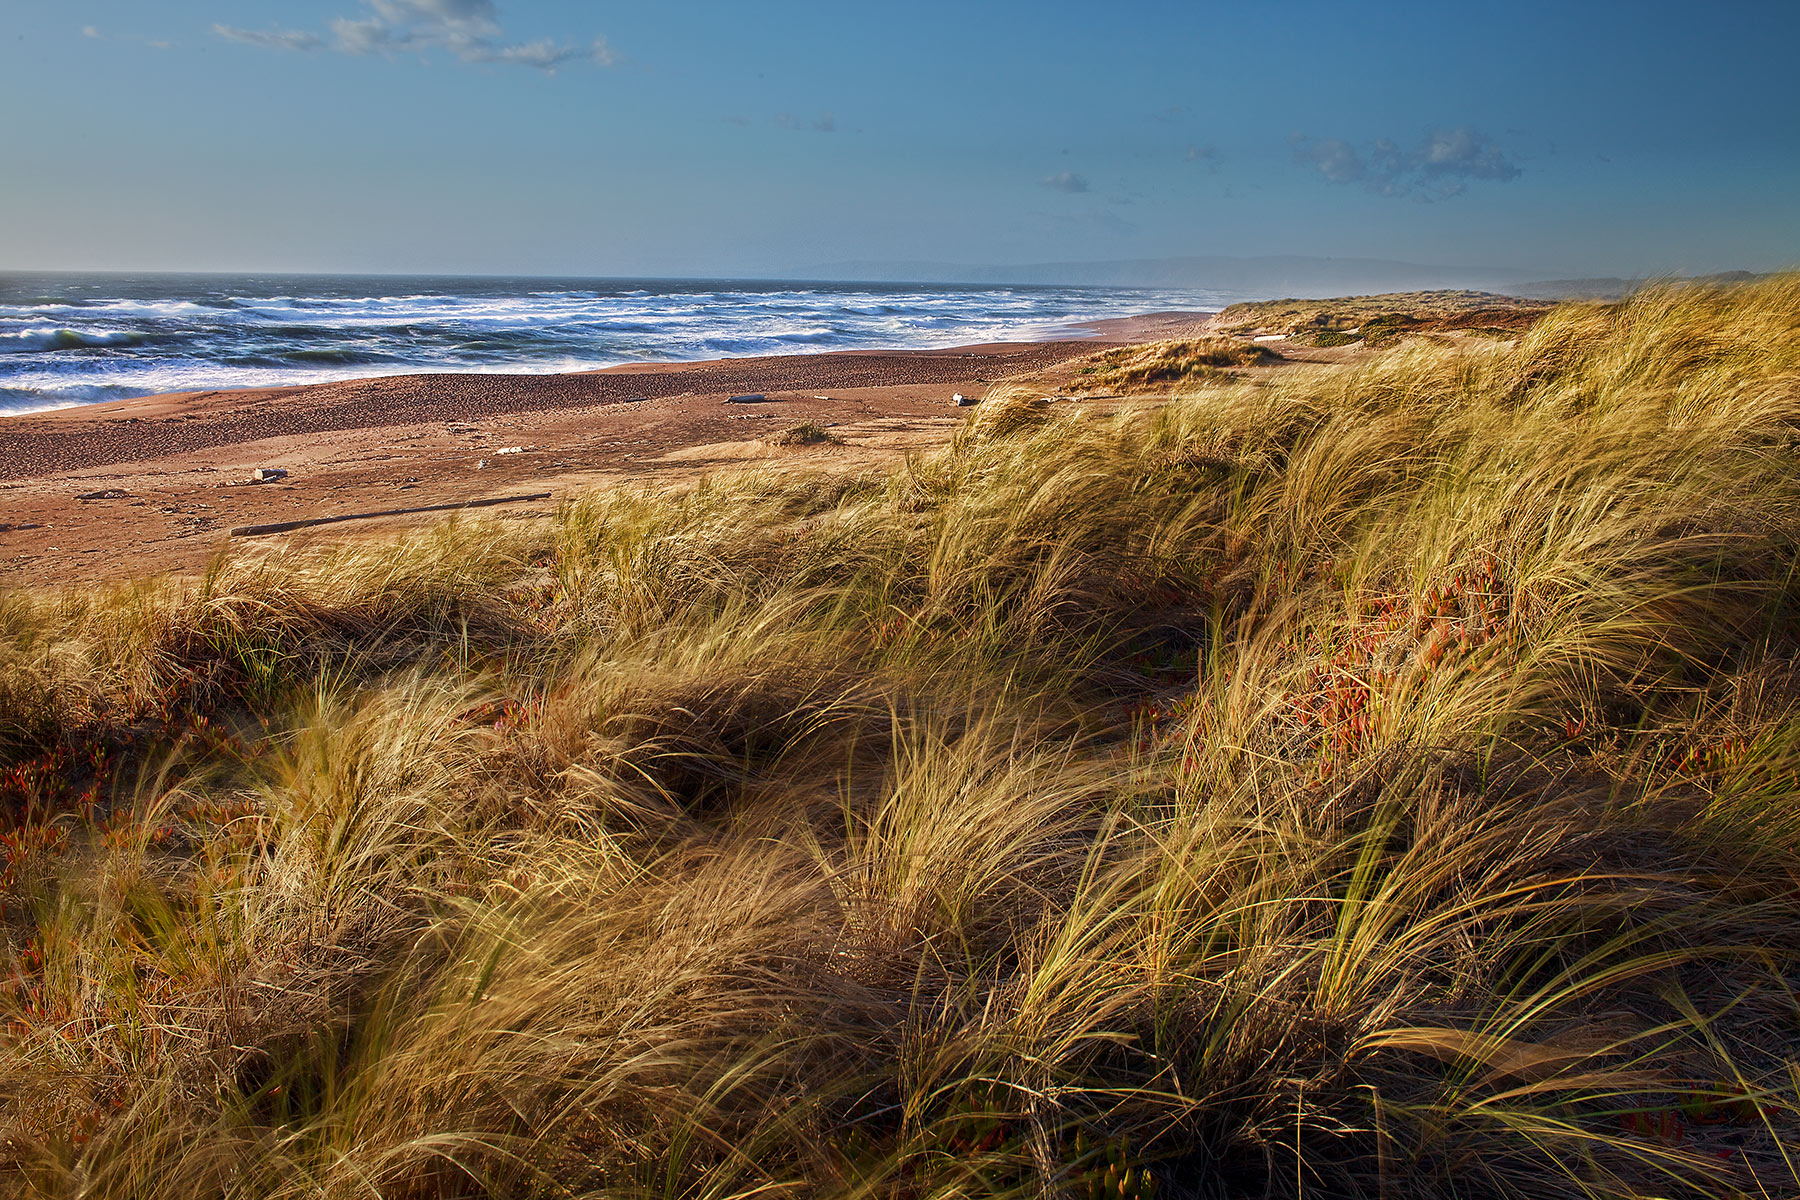 Dune grass California  Coast | Dovis Bird Agency Reps